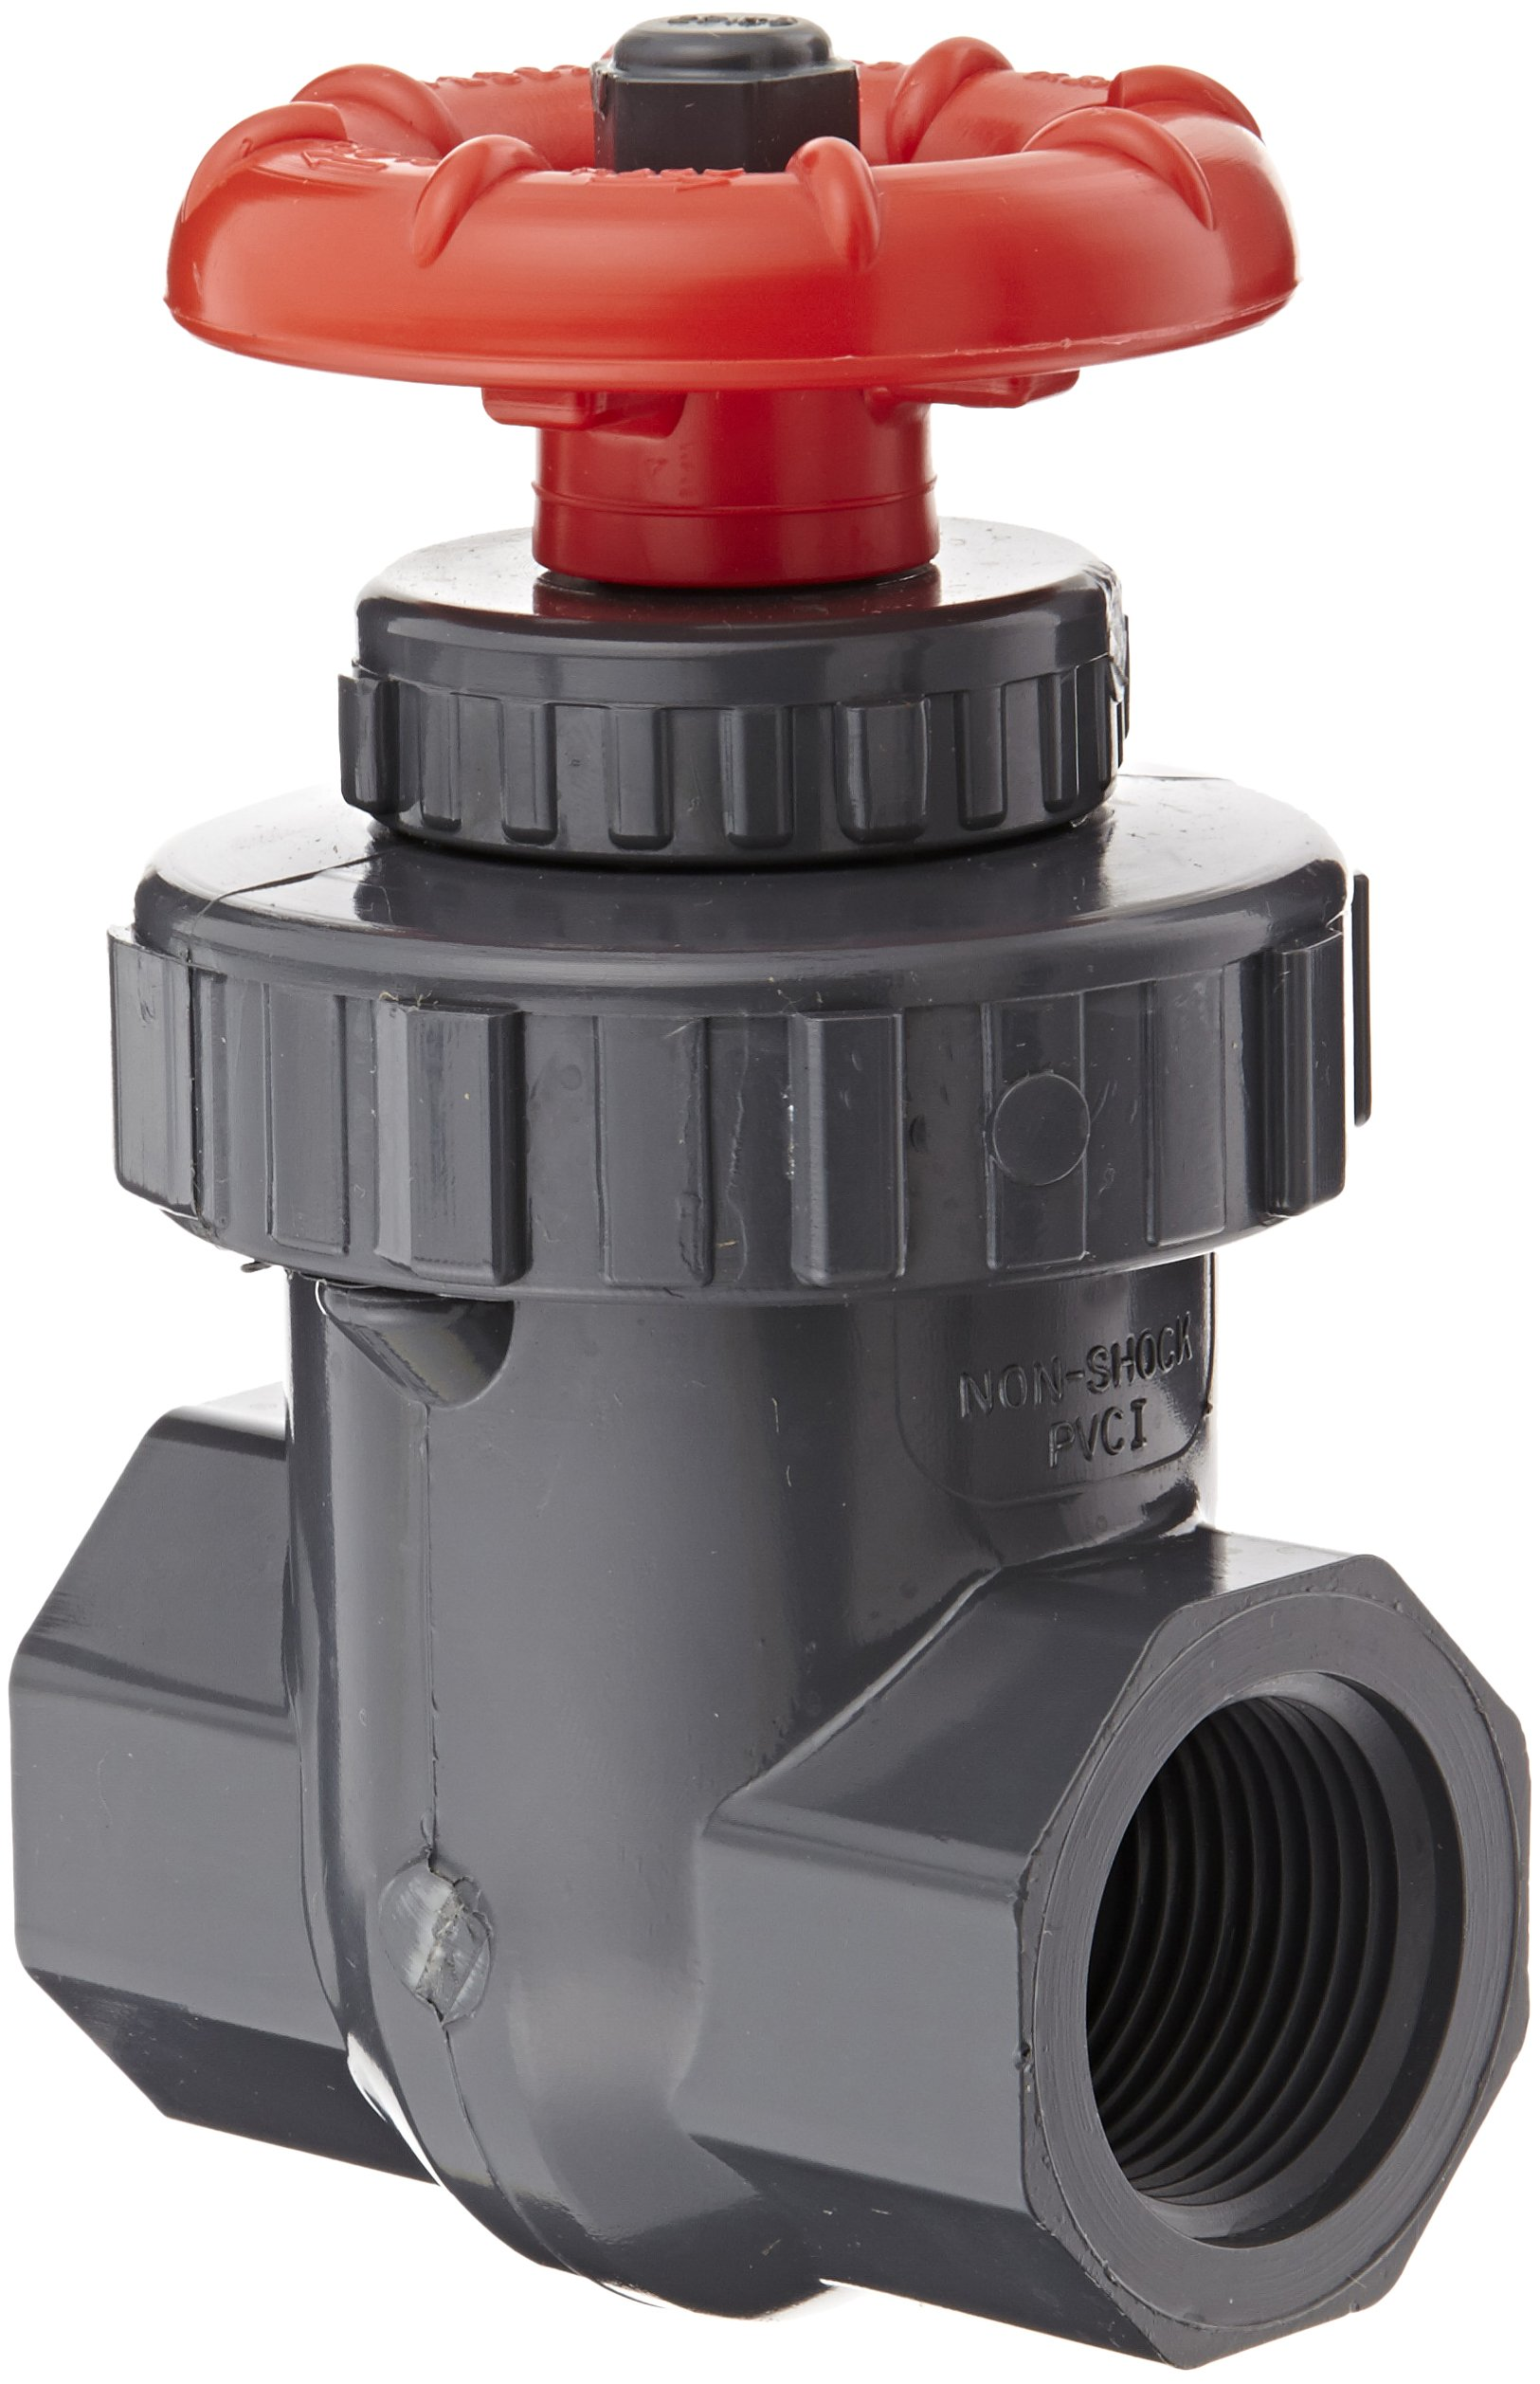 Spears PVC Gate Valve, Non-Rising Stem, Buna-N O-Ring, 1'' NPT Female by Spears Manufacturing (Image #1)